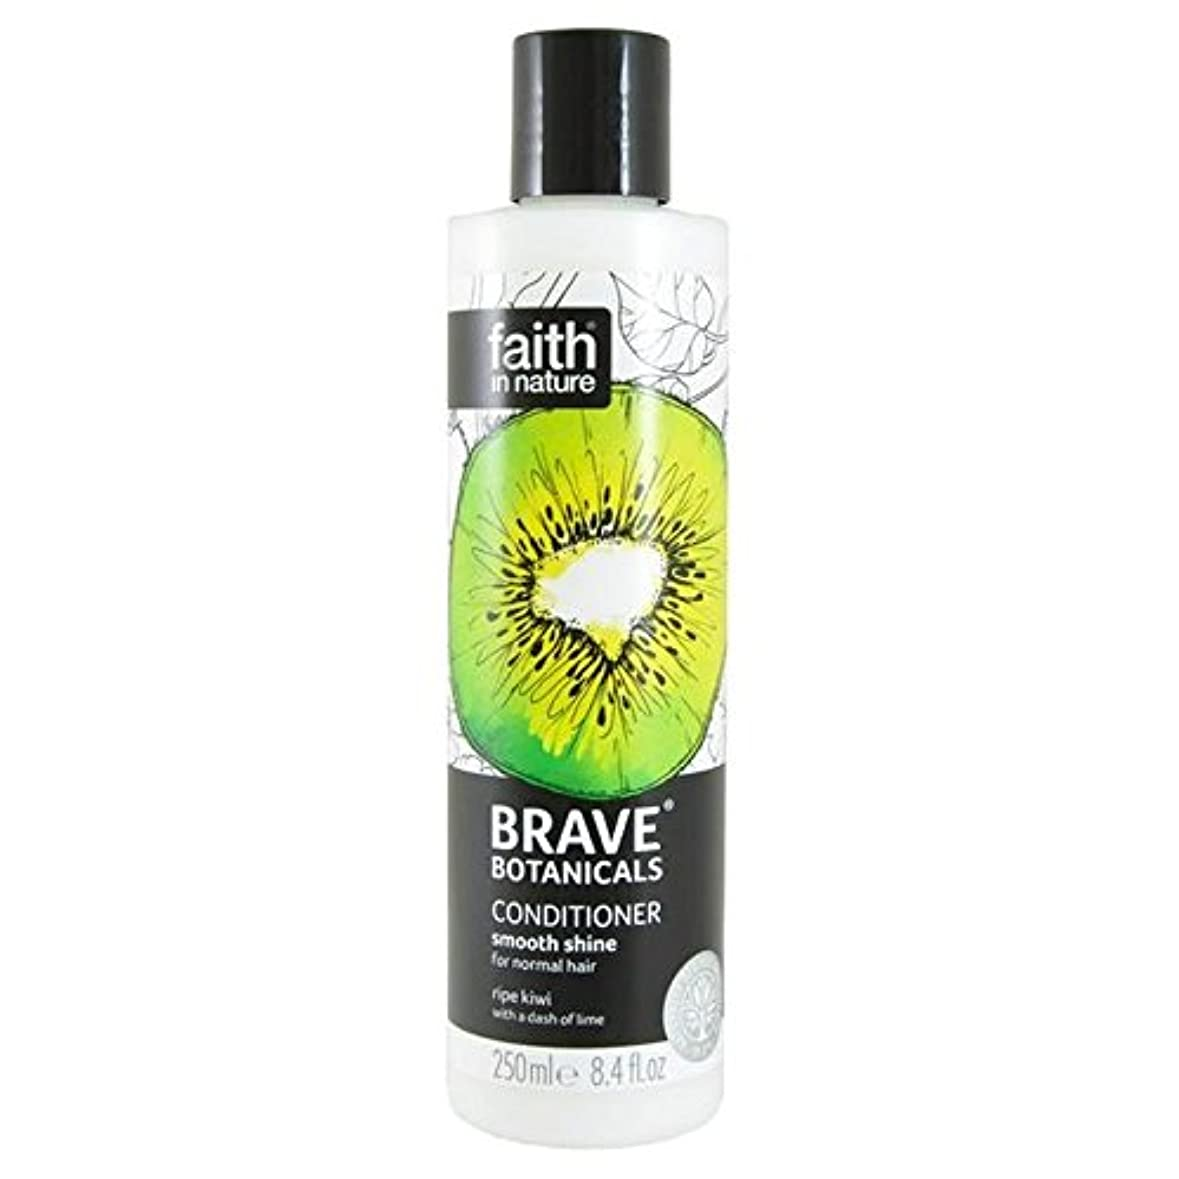 Brave Botanicals Kiwi & Lime Smooth Shine Conditioner 250ml (Pack of 6) - (Faith In Nature) 勇敢な植物キウイ&ライムなめらかな輝...